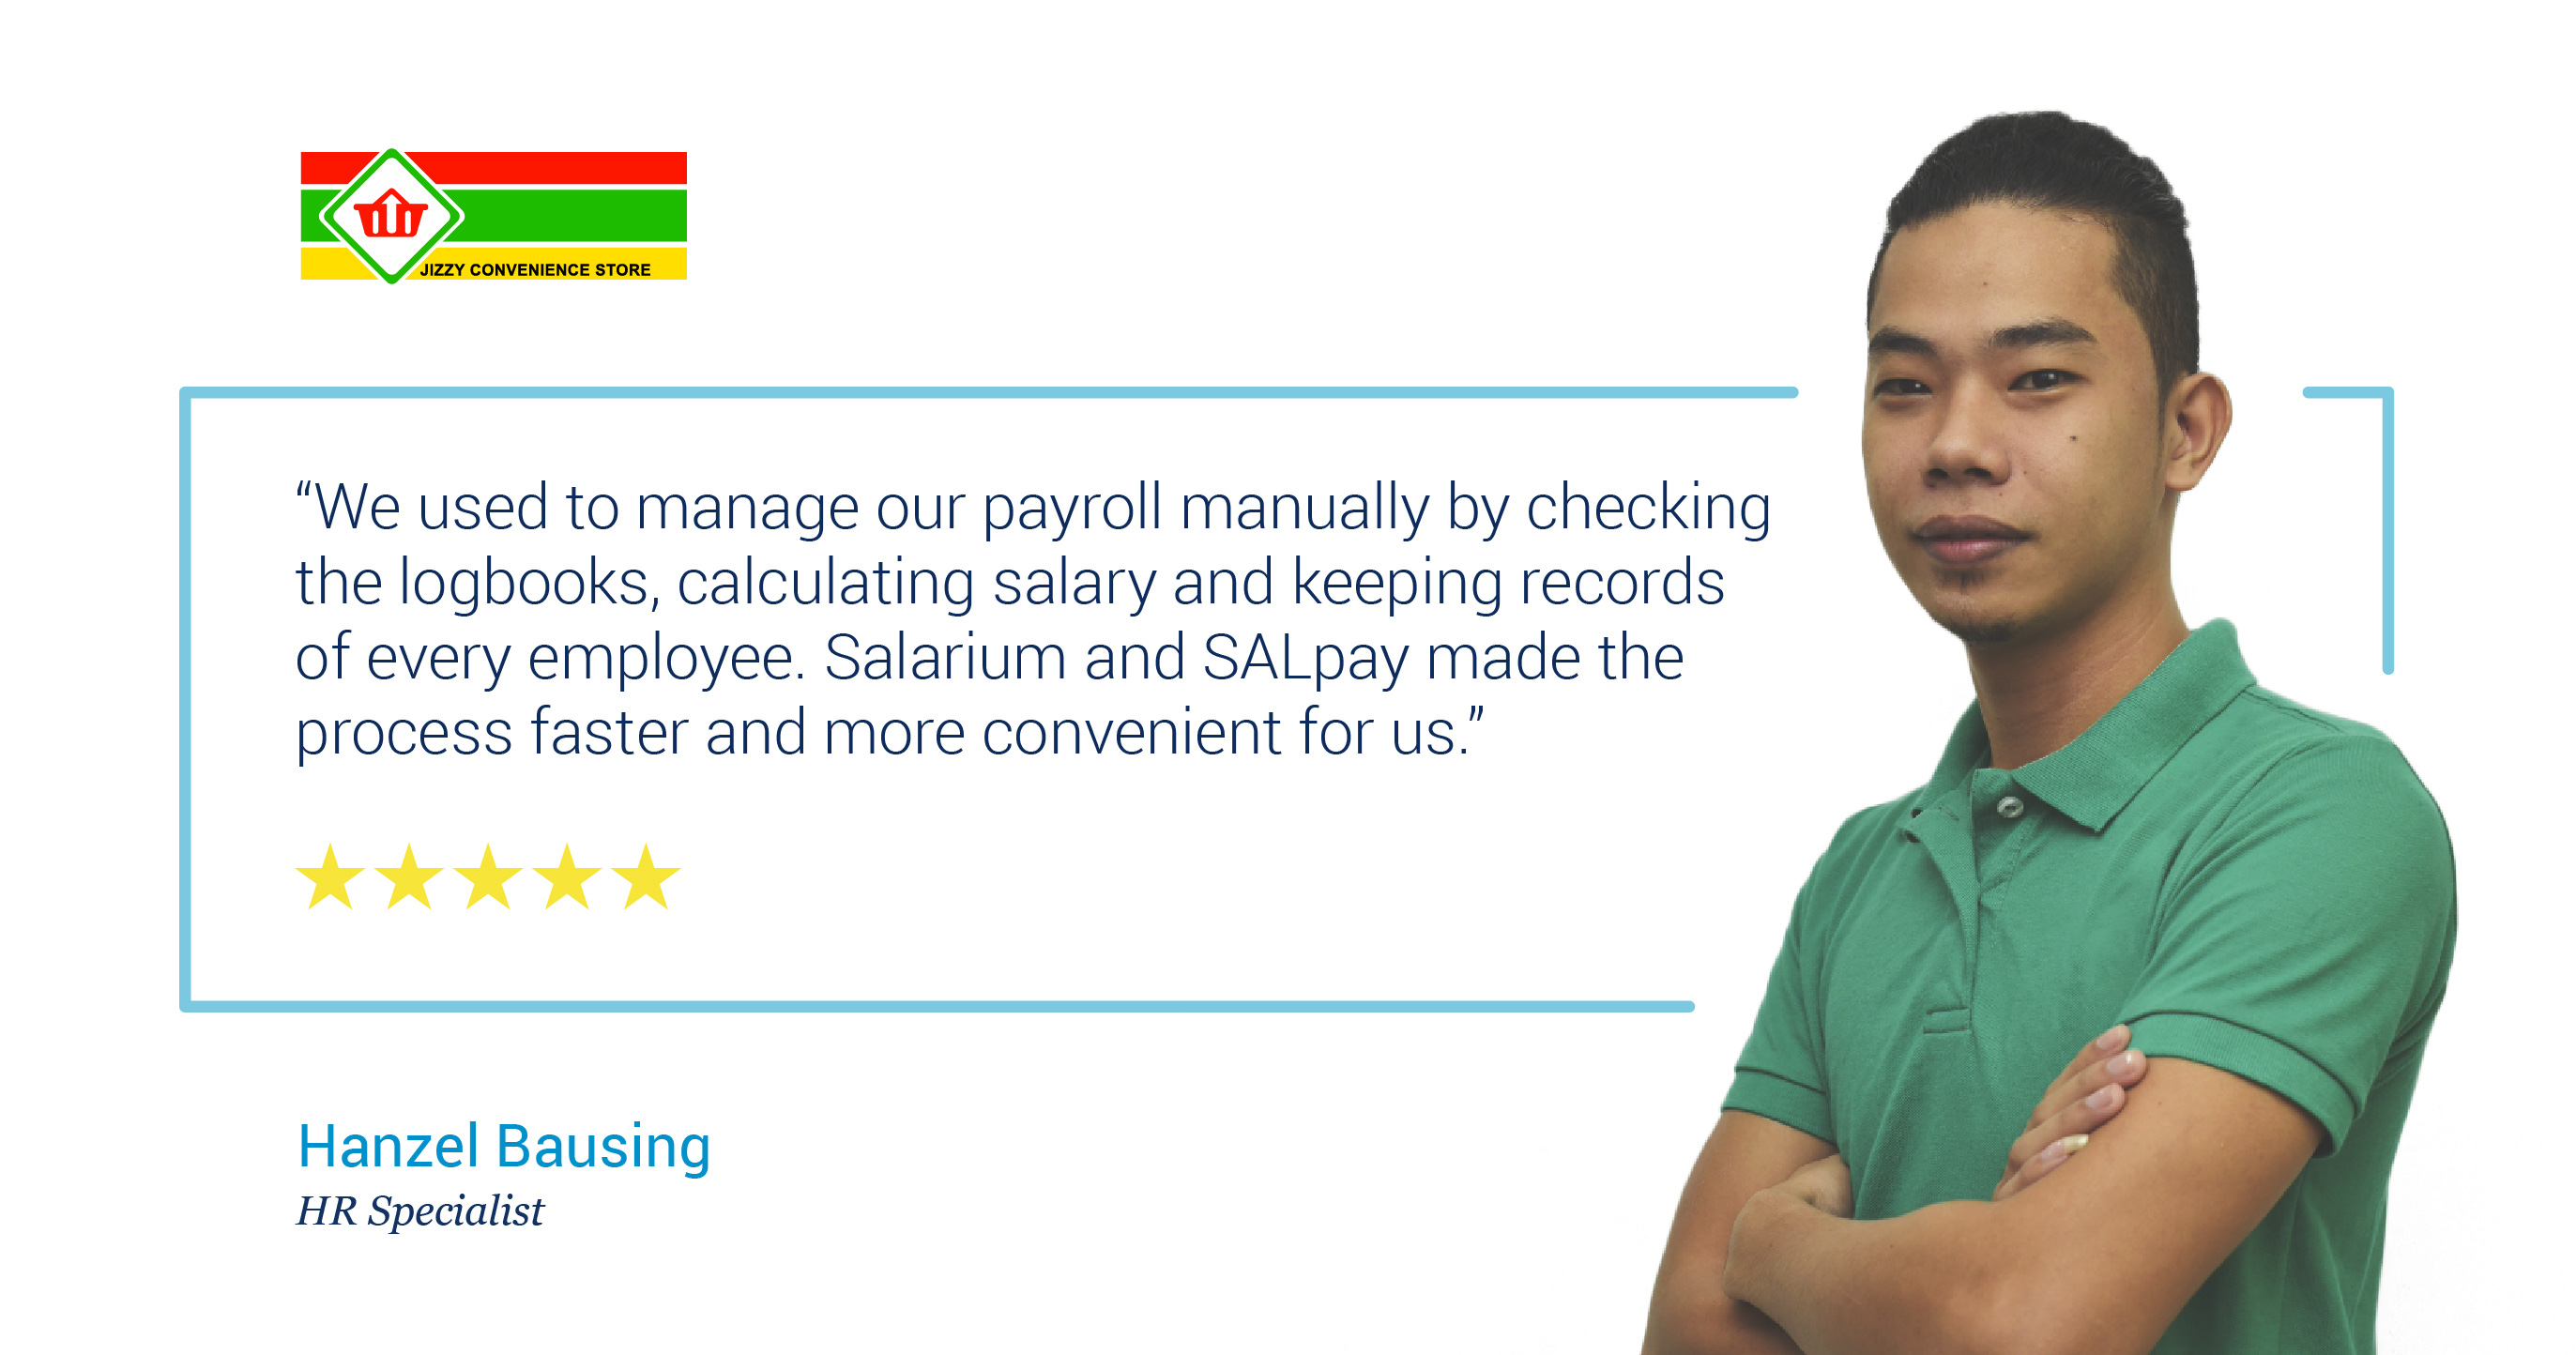 Salarium and SALPay review on payroll automation by Hanzel Bausing of Jizzy Convenience Store